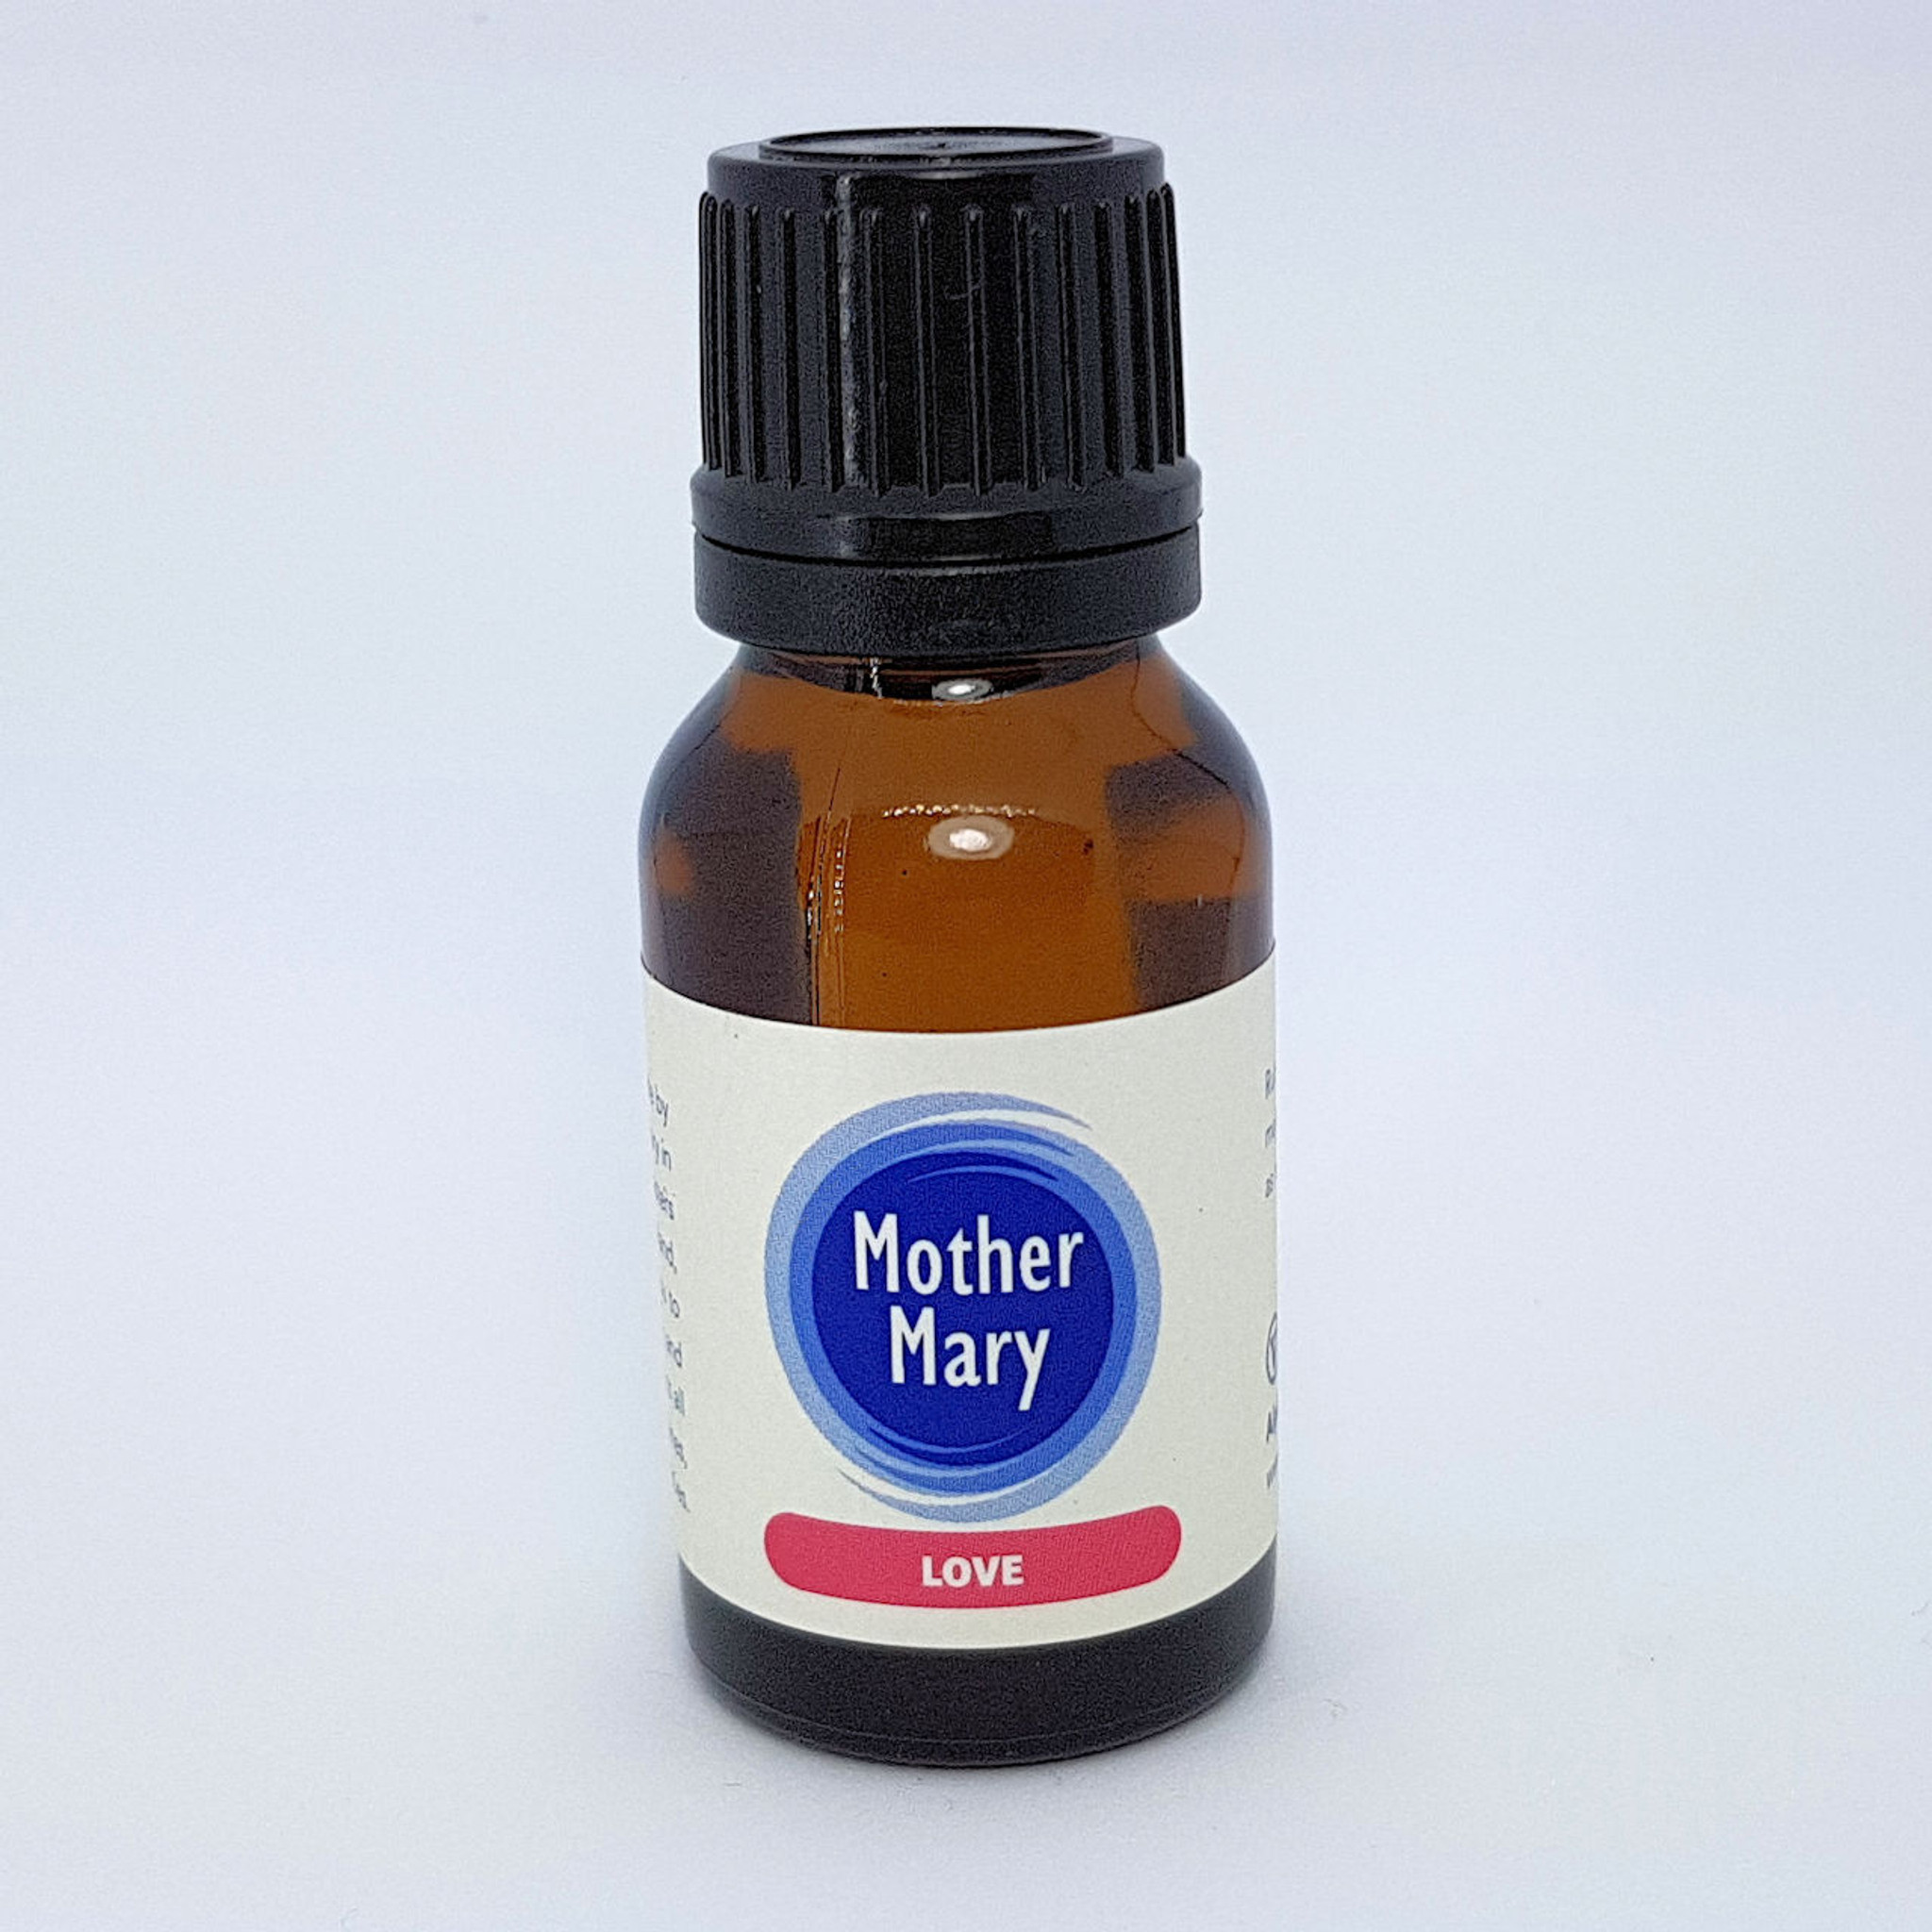 Mother Mary oil - Love